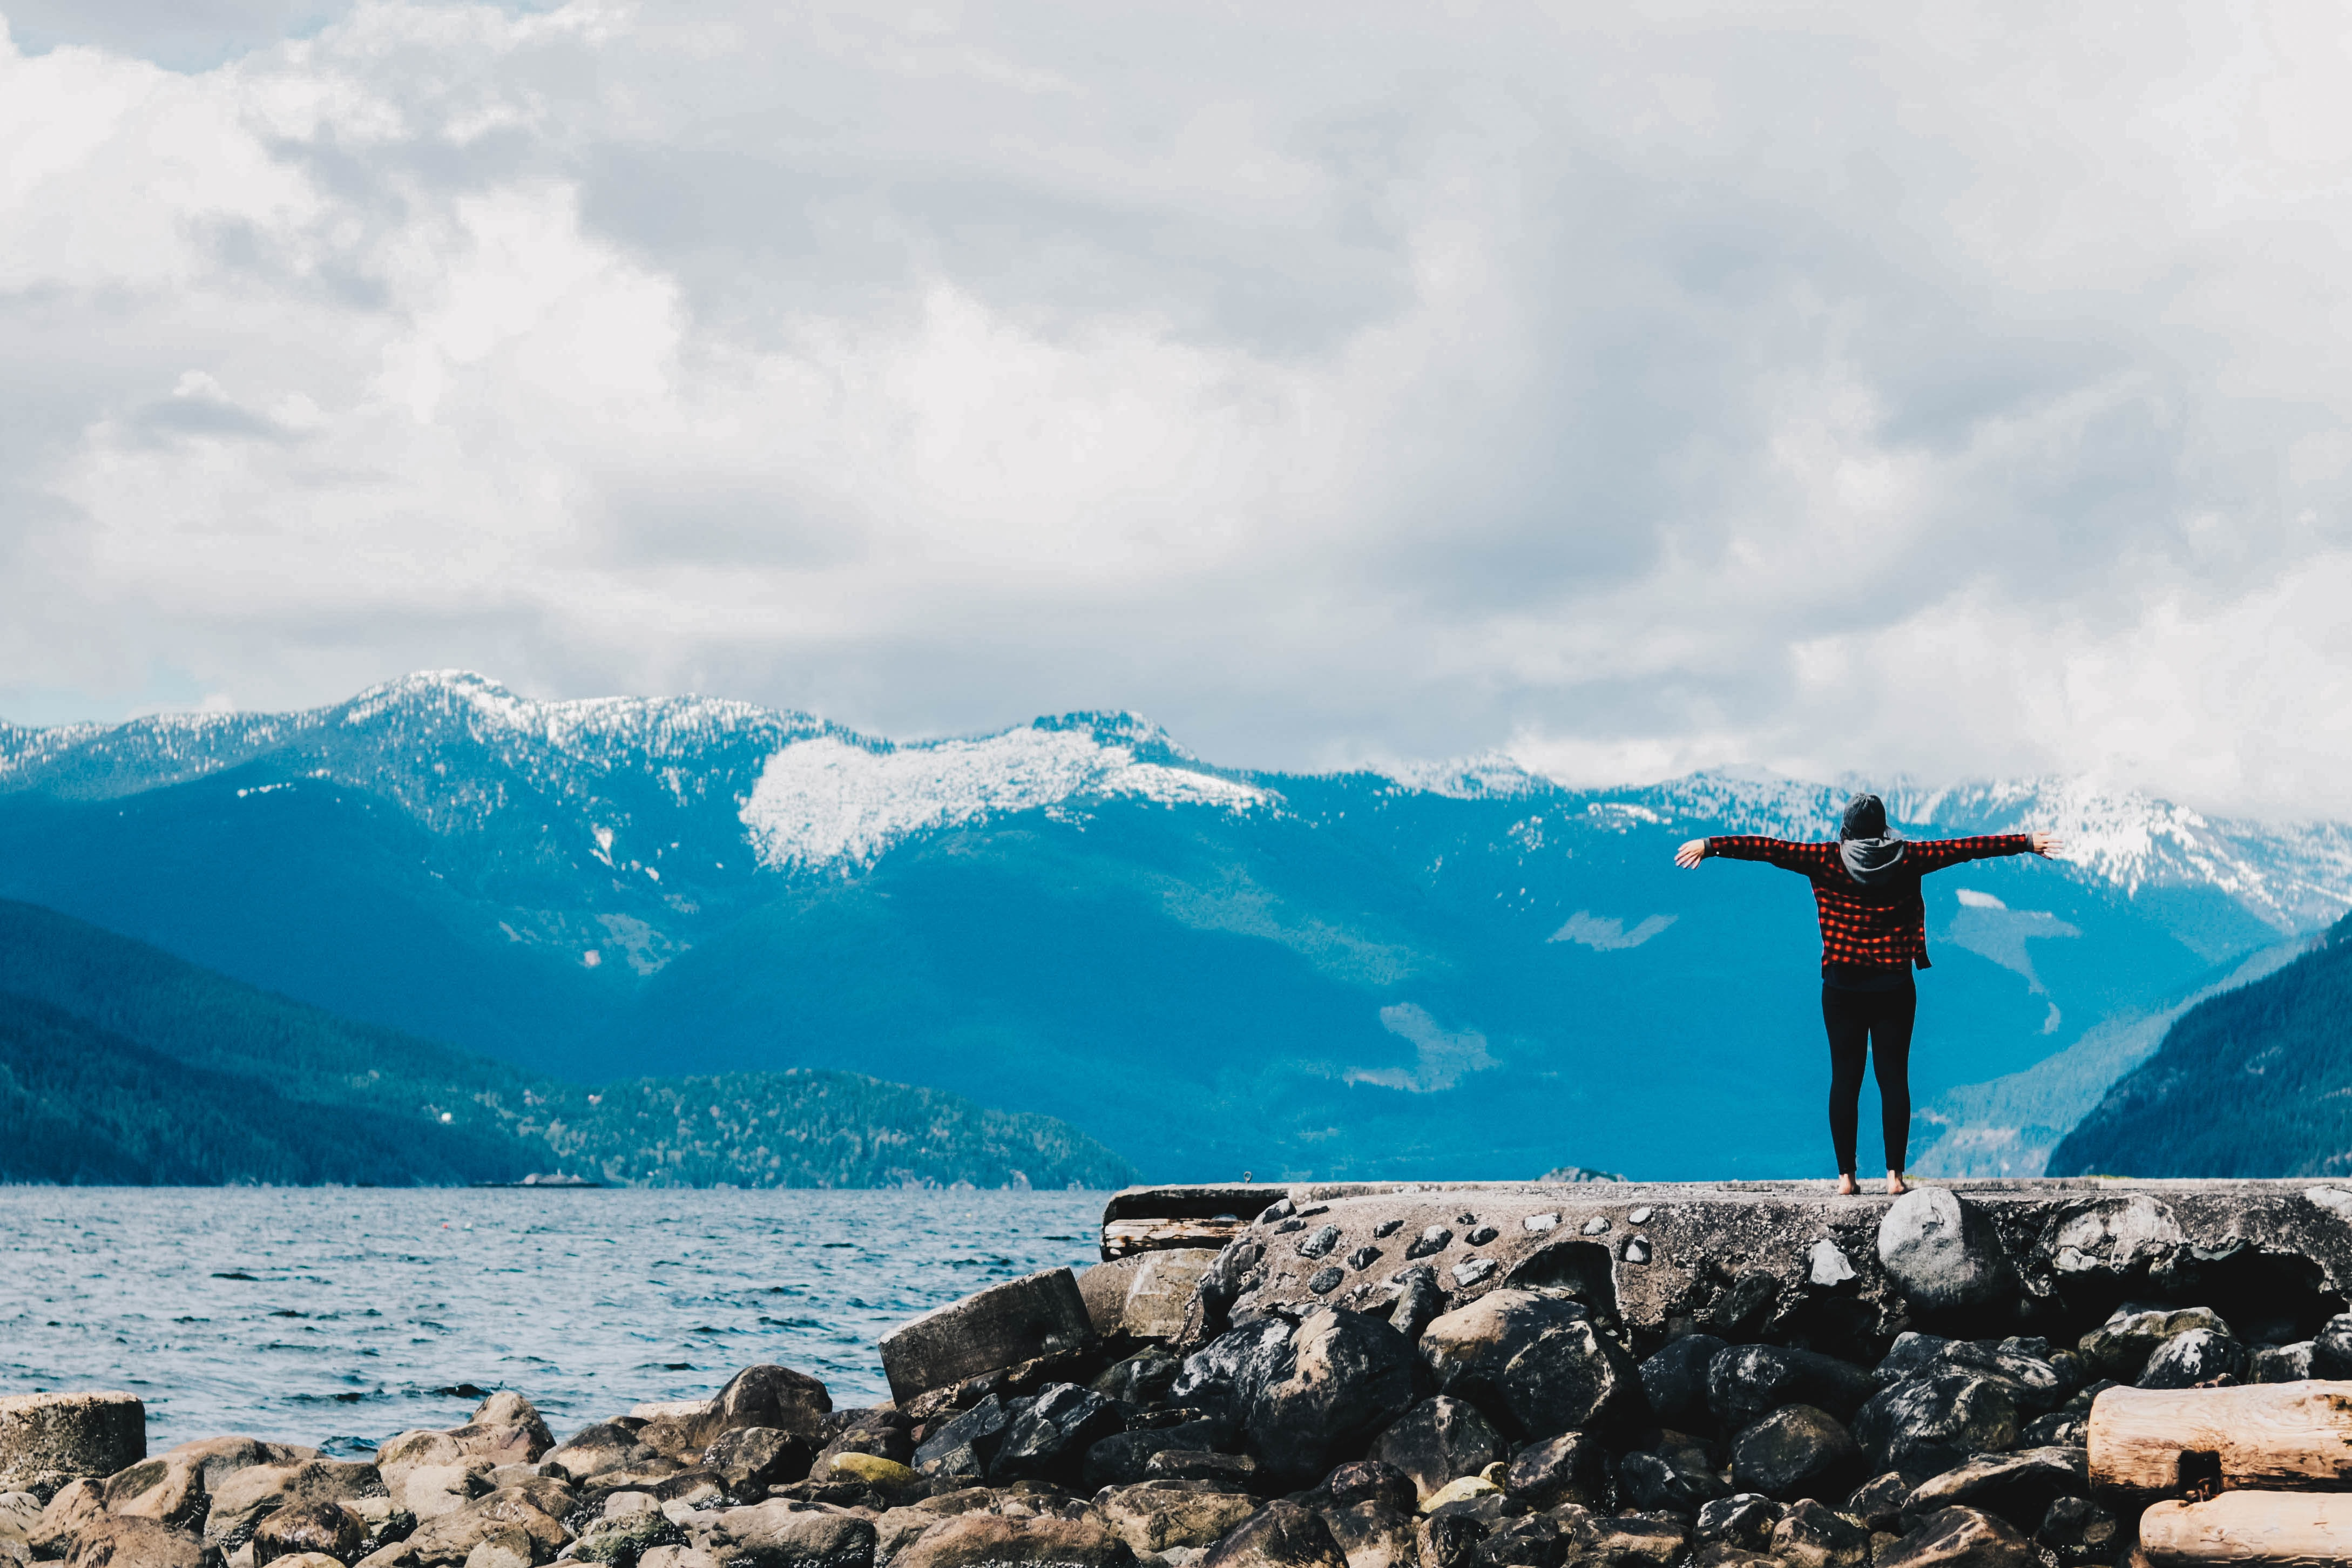 person spreading arms near water and mountain range